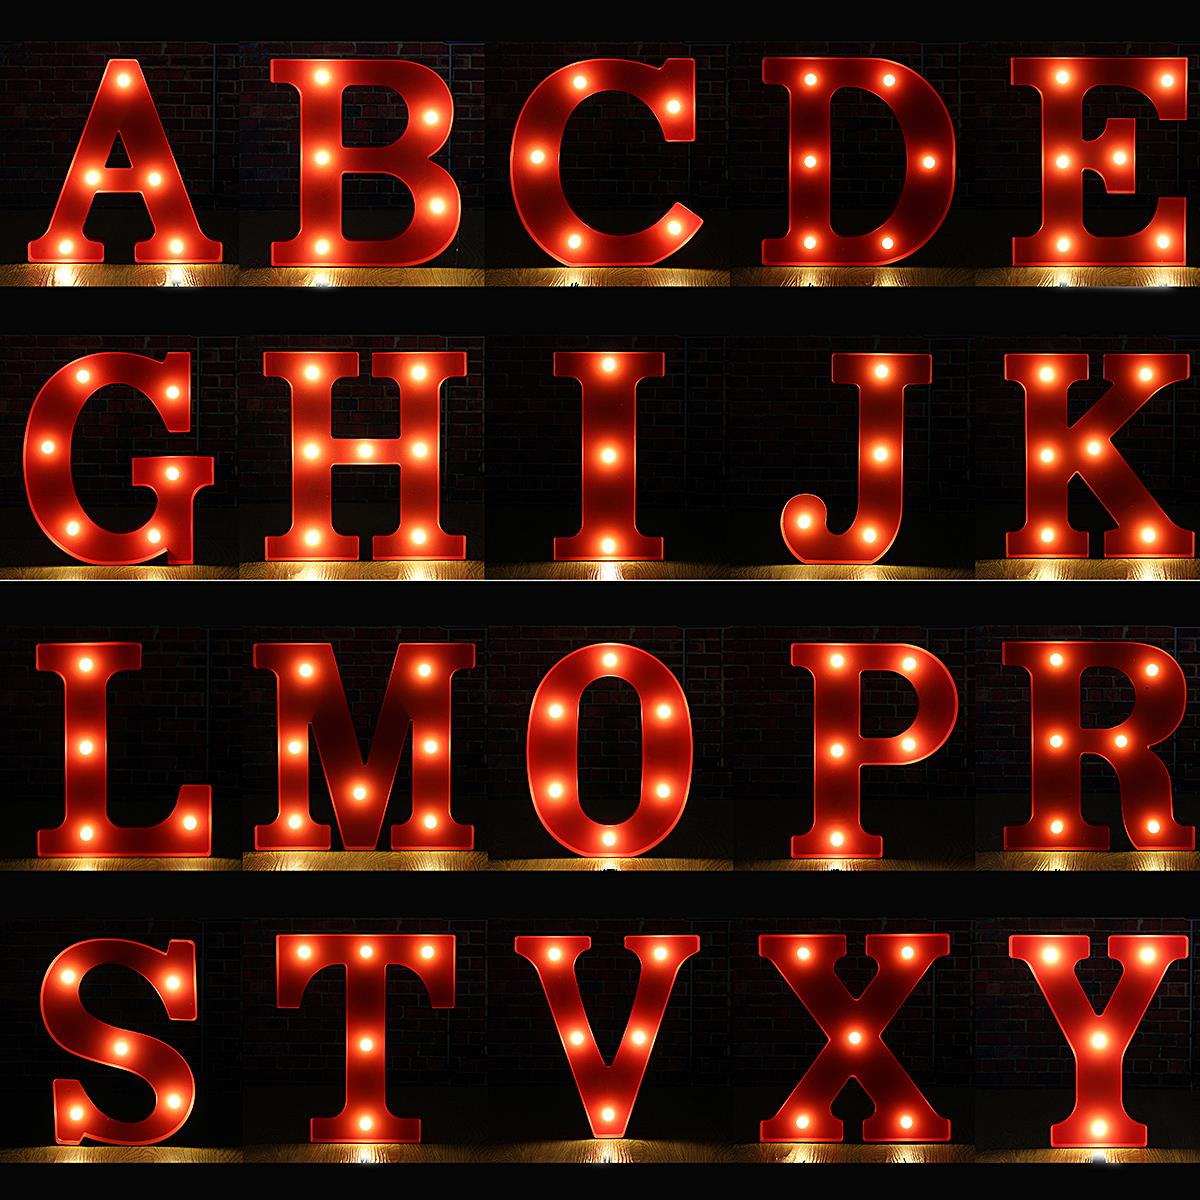 aliexpresscom buy wall lamp led night light lamp kids marquee letter lights vintage alphabet light up christmas party battery operated from reliable lamp